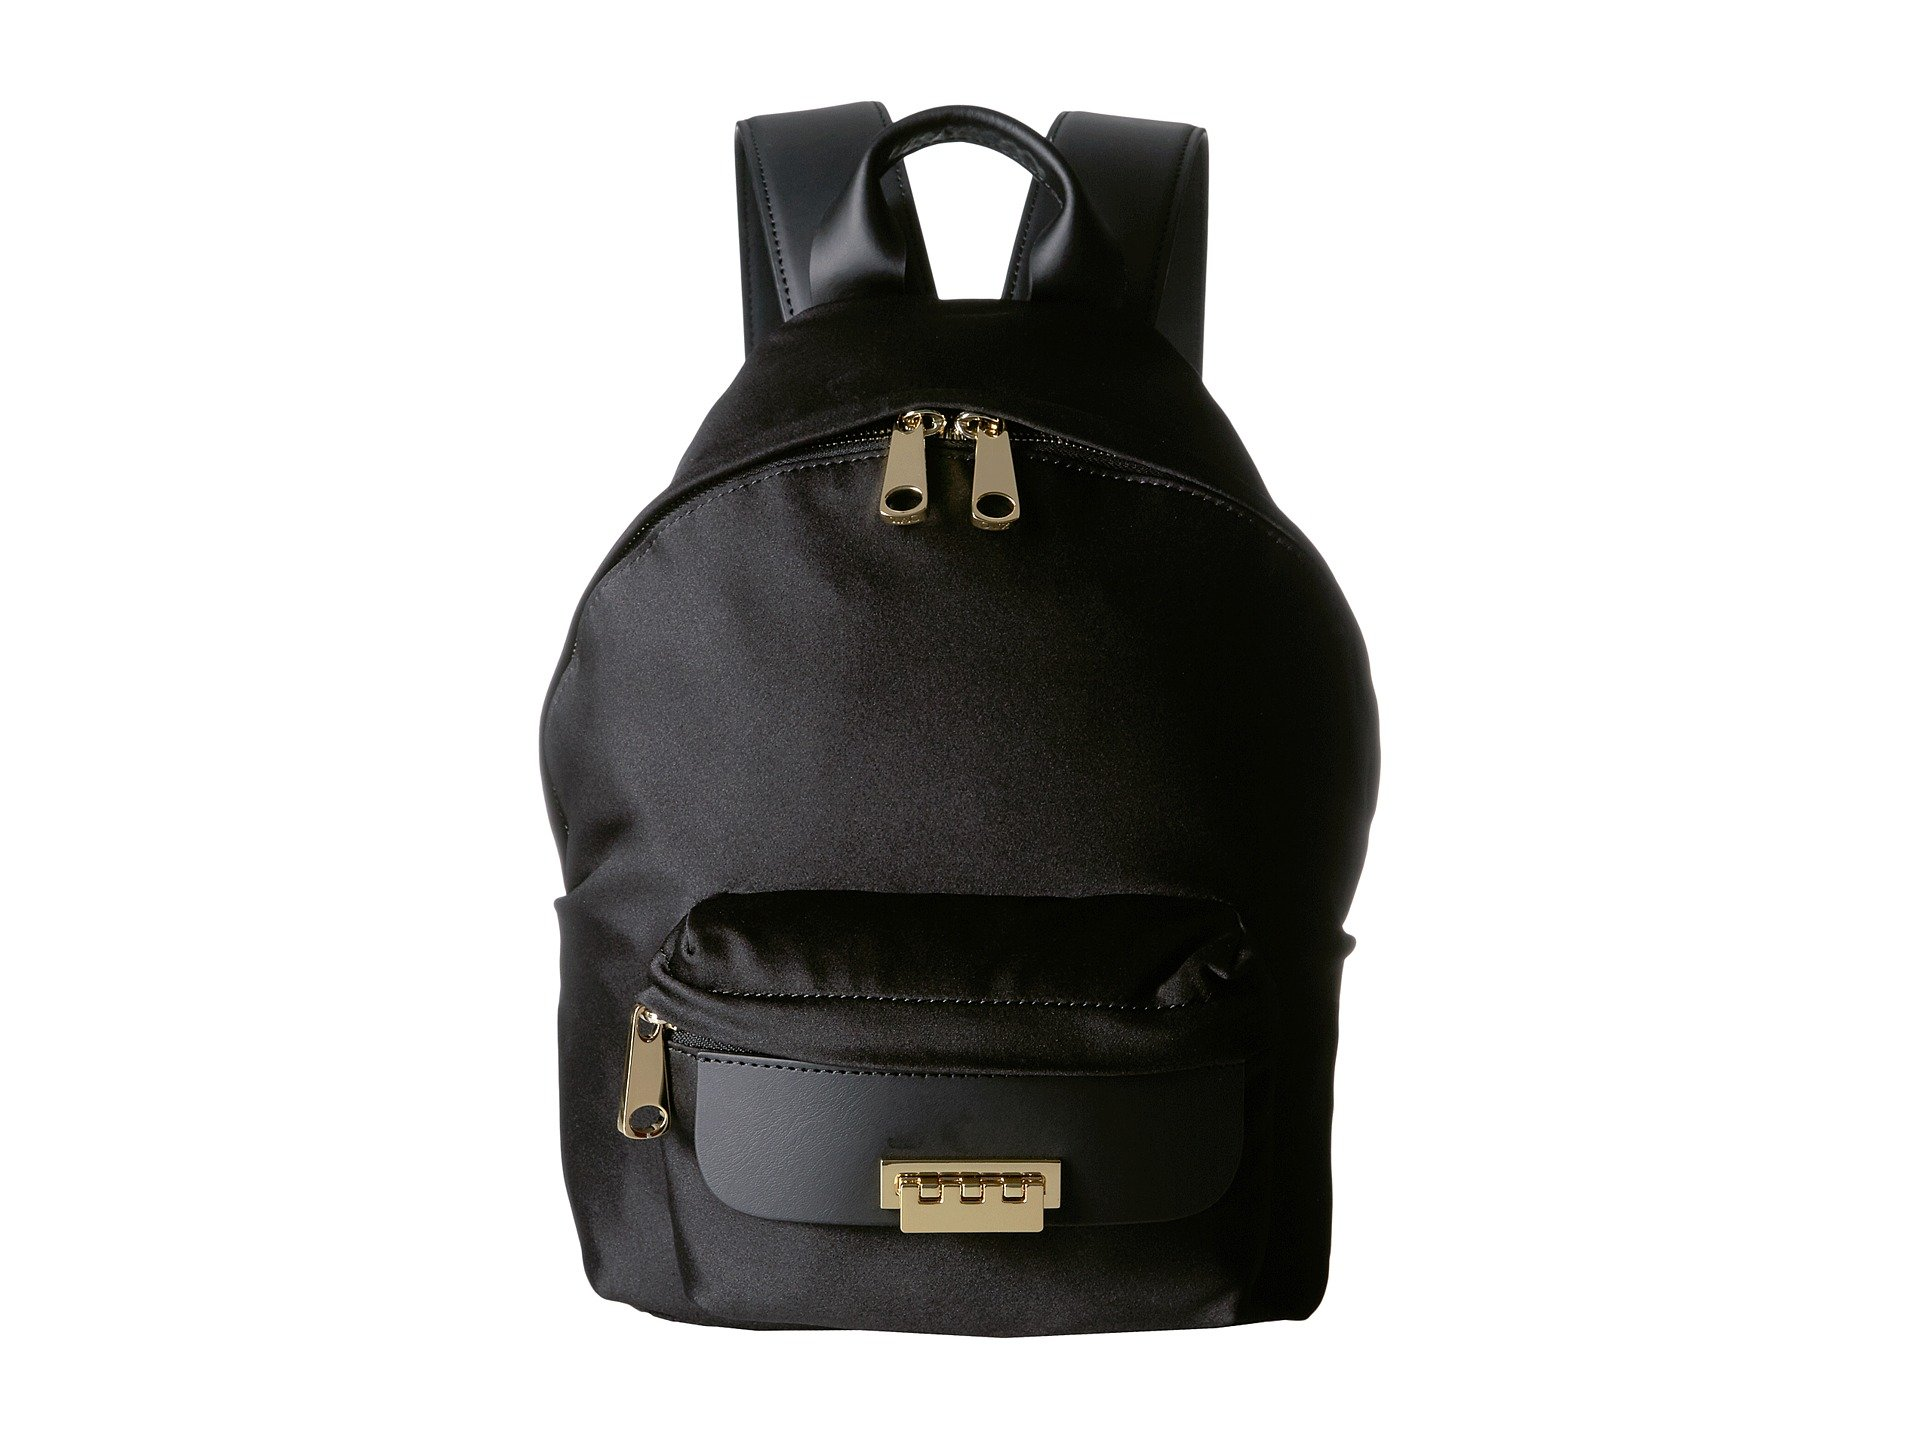 Mochila para Mujer ZAC Zac Posen Eartha Small Backpack - Satin  + ZAC Zac Posen en VeoyCompro.net